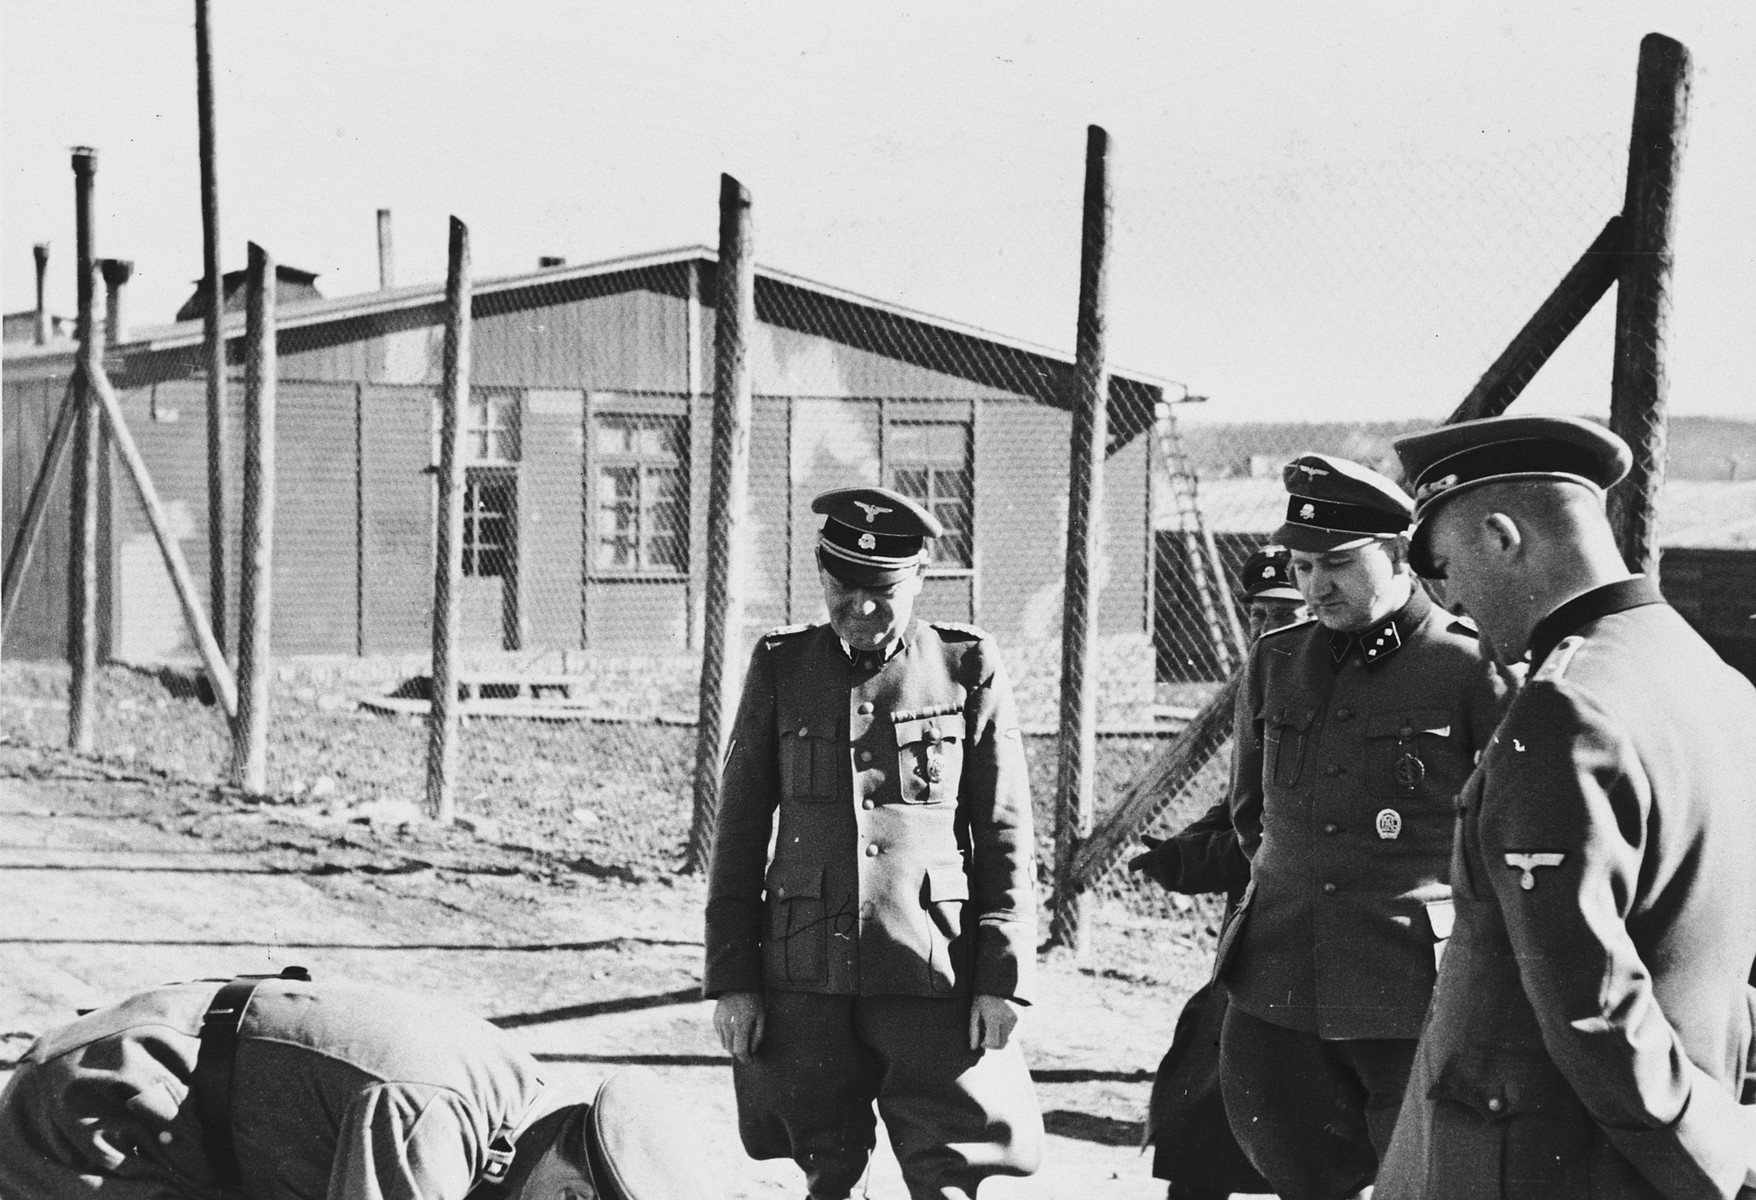 A group of SS officers views something on the ground in the Buchenwald concentration camp.